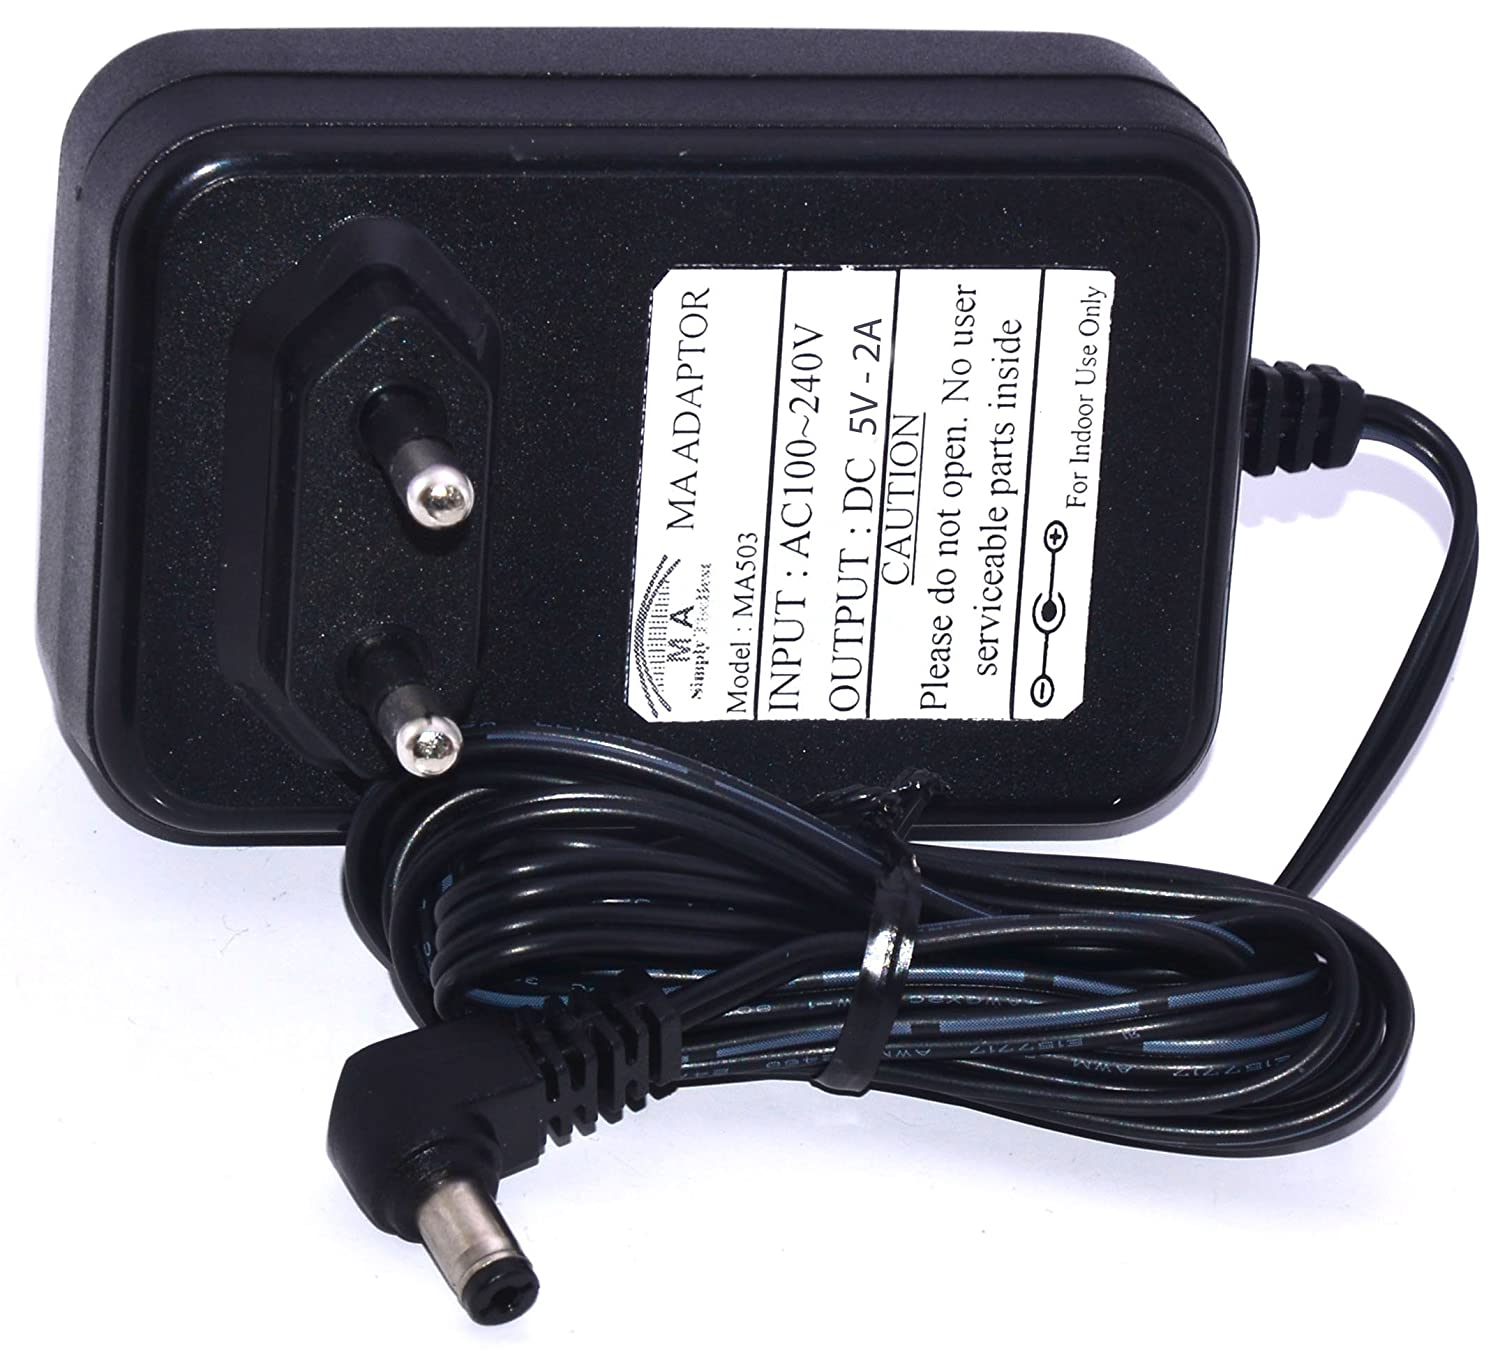 Buy Ma Dc 5v 2a L Type Power Adaptor For Arduino Board Router Modem And Other Online At Low Prices In India